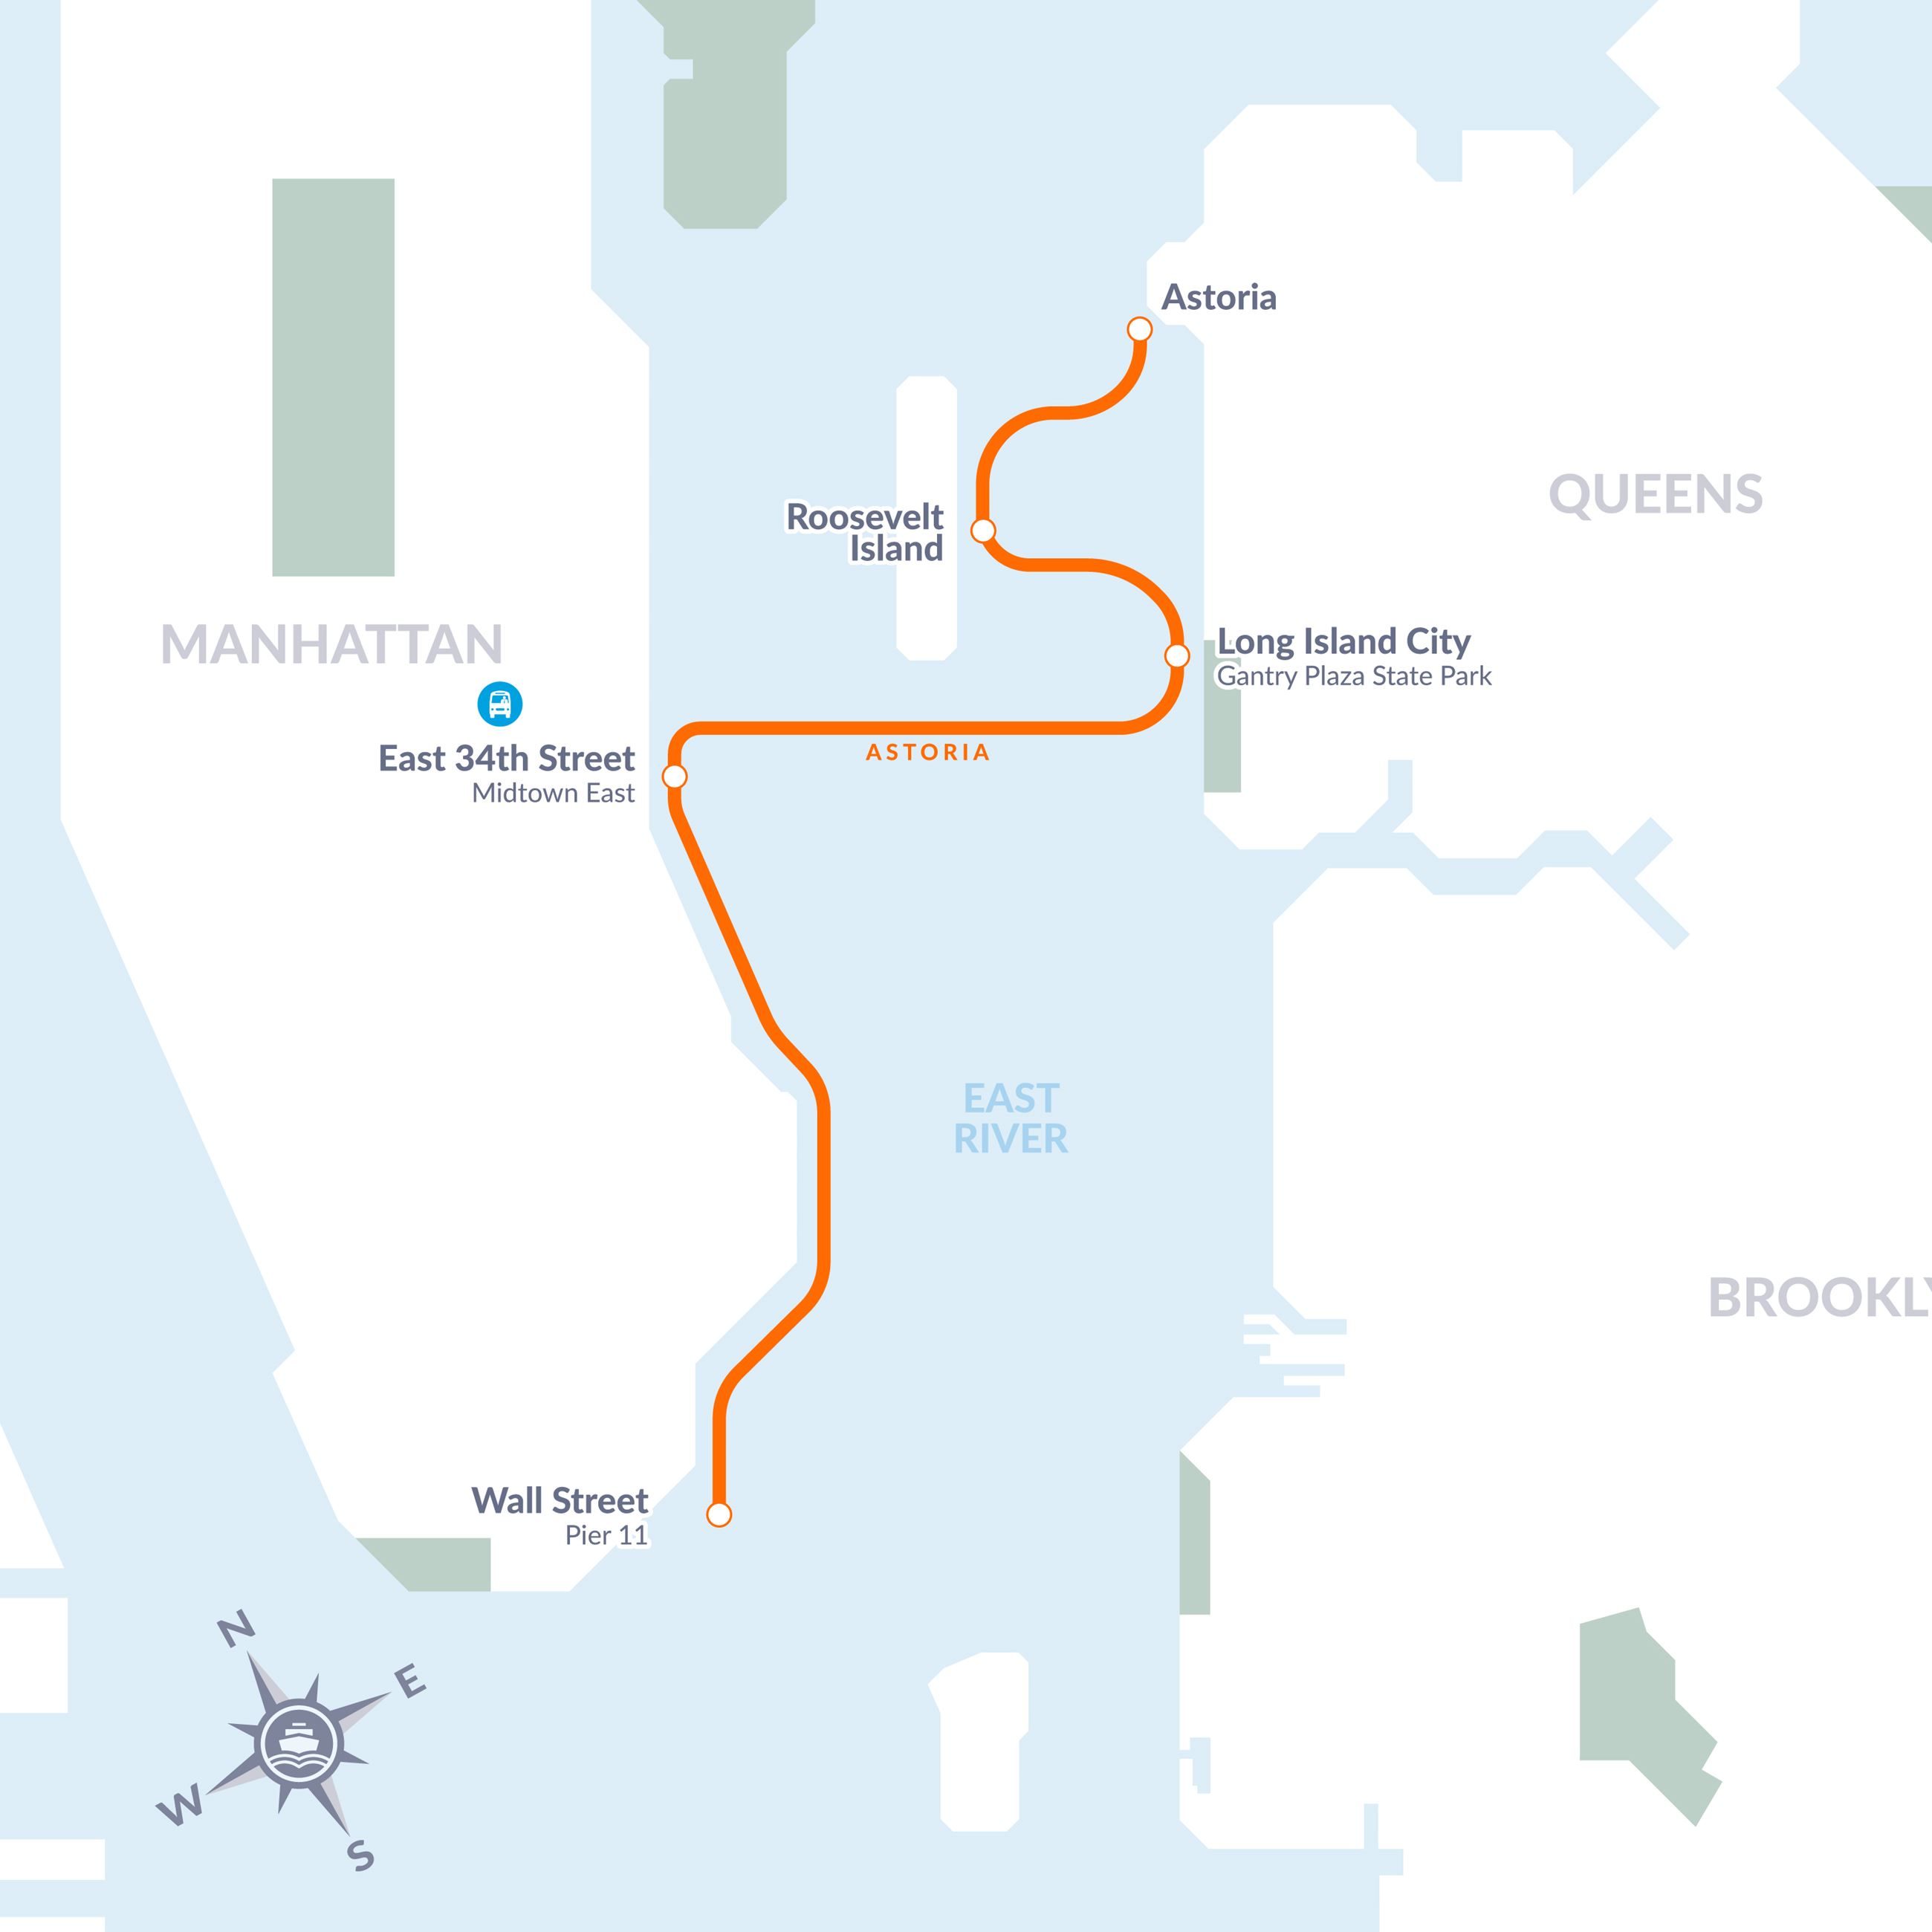 Astoria Nyc Map.Ferry Roosevelt Island Operating Corporation Of The State Of New York